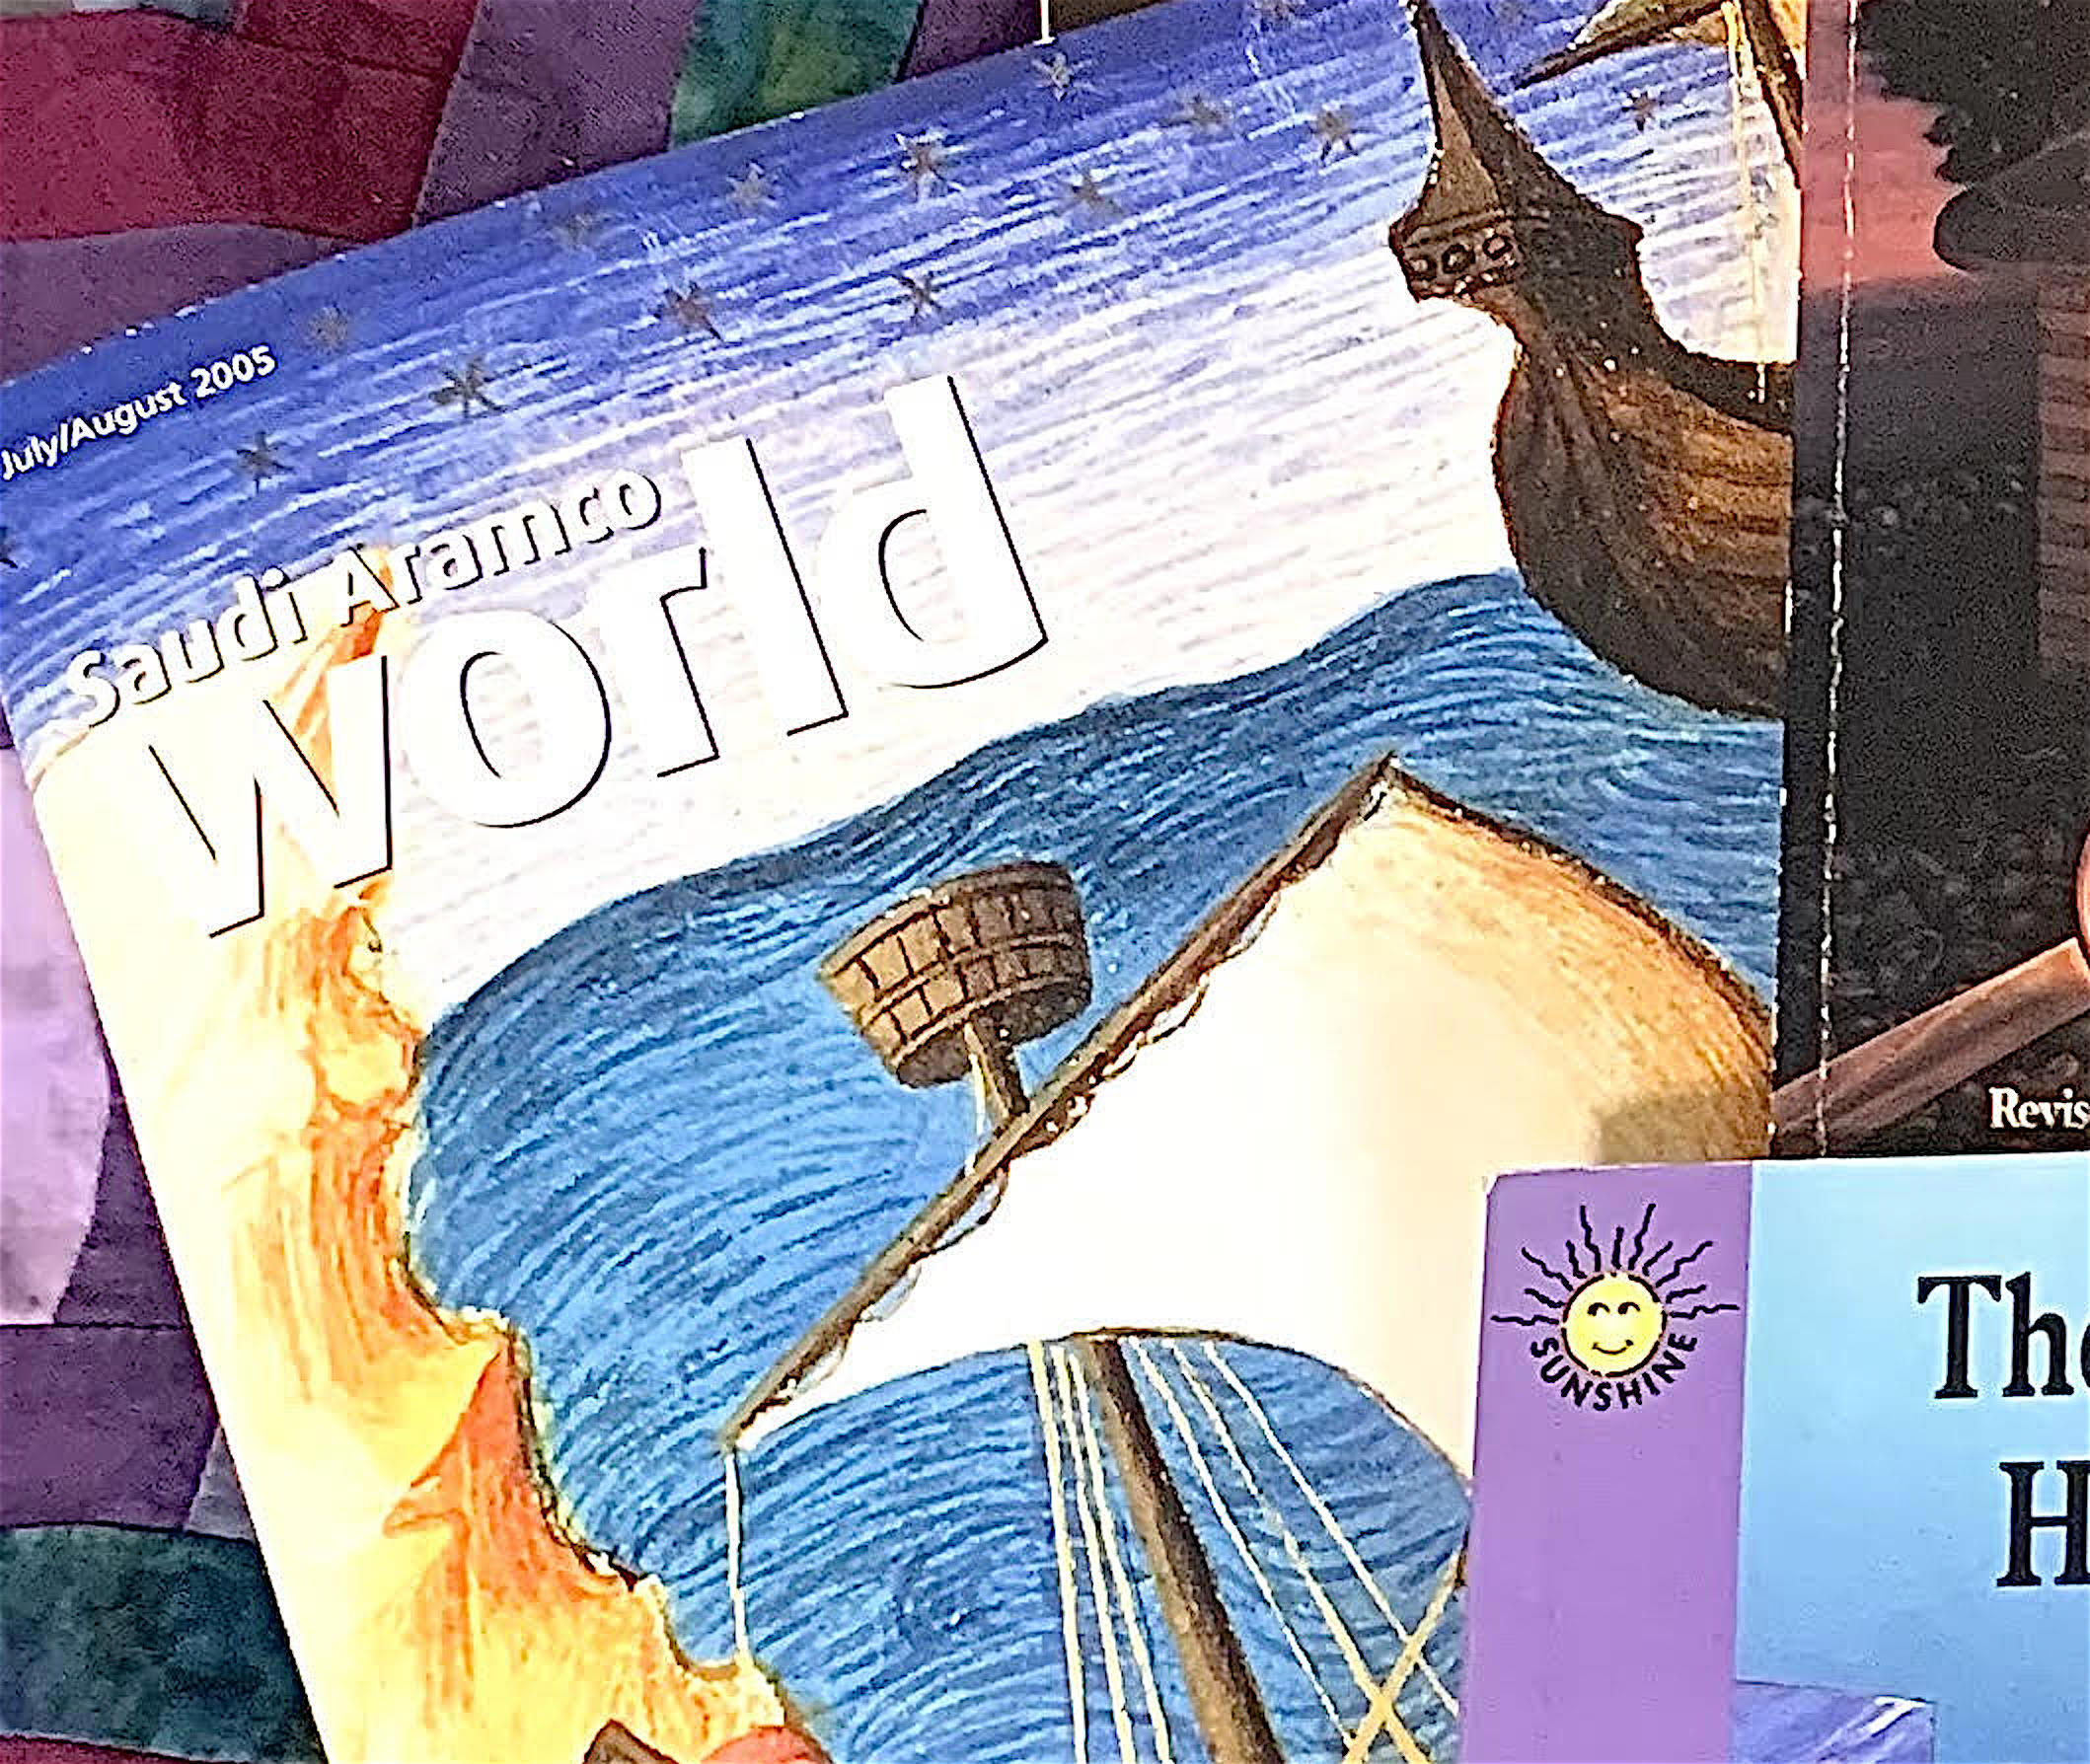 Close-up of Saudi Aramco World magazine.  The cover shows a painting of two ships against a wavy blue sea, each with a large rectangular sail.  There are two sailors on one of the ships -- one is checking a compass and one is climbing the mast.